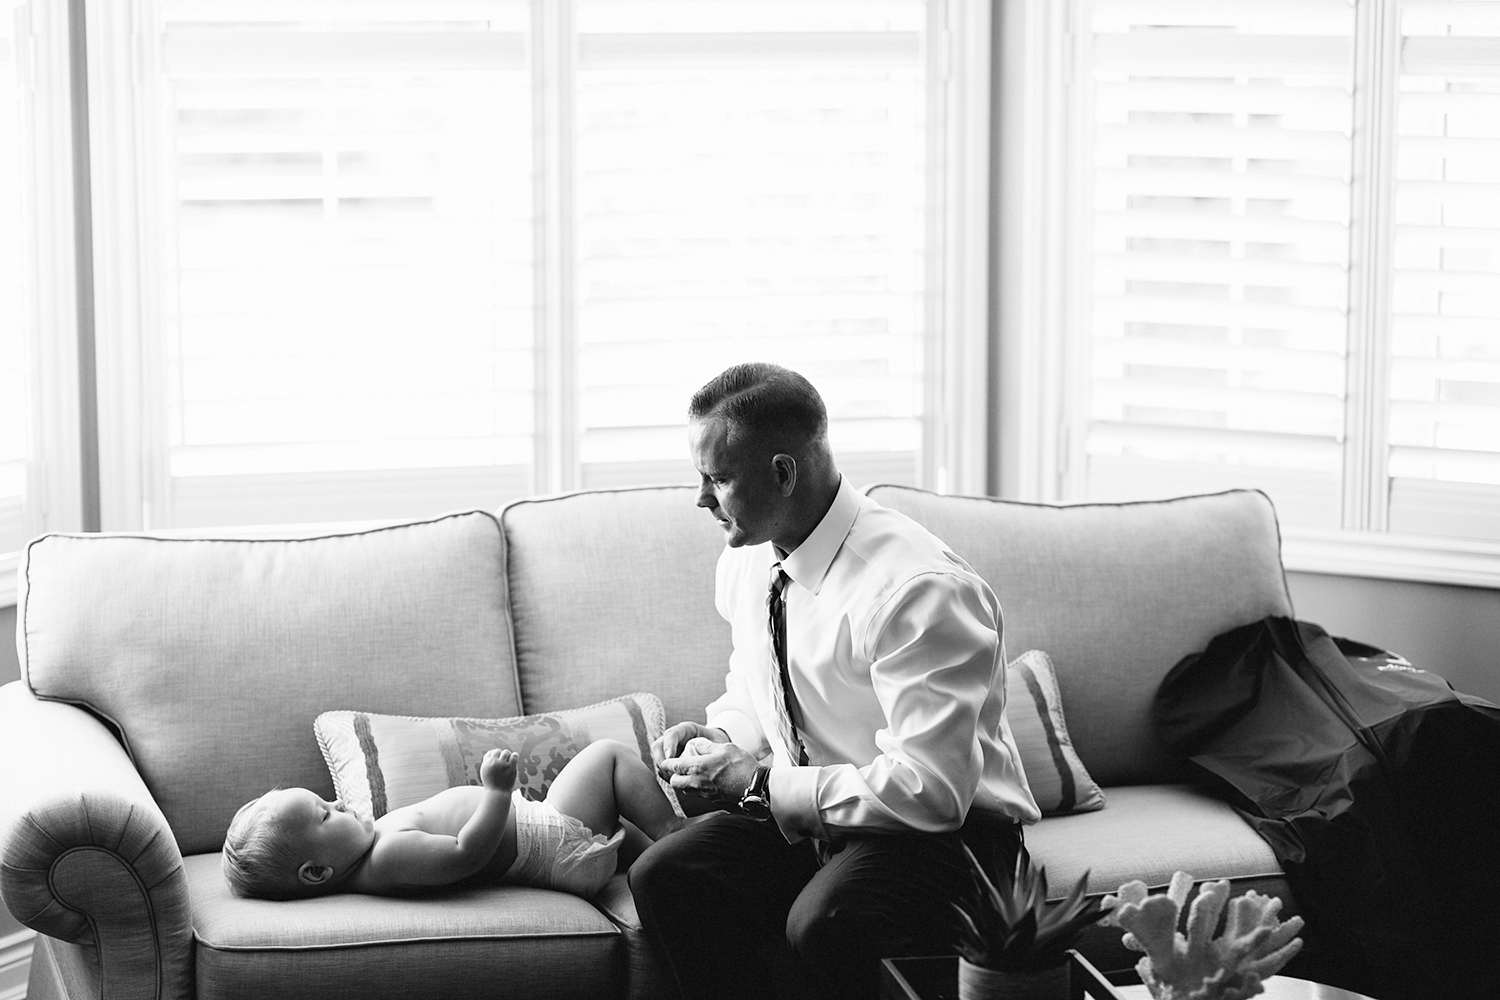 Photojournalistic-Wedding-Photographers-in-Toronto-Candid-Natural-Dowswell-Barn-Wedding-Rustic-GTA-Muskoka-Farm-Groom-getting-ready-blue-suit-dressing-his-cute-kid.jpg